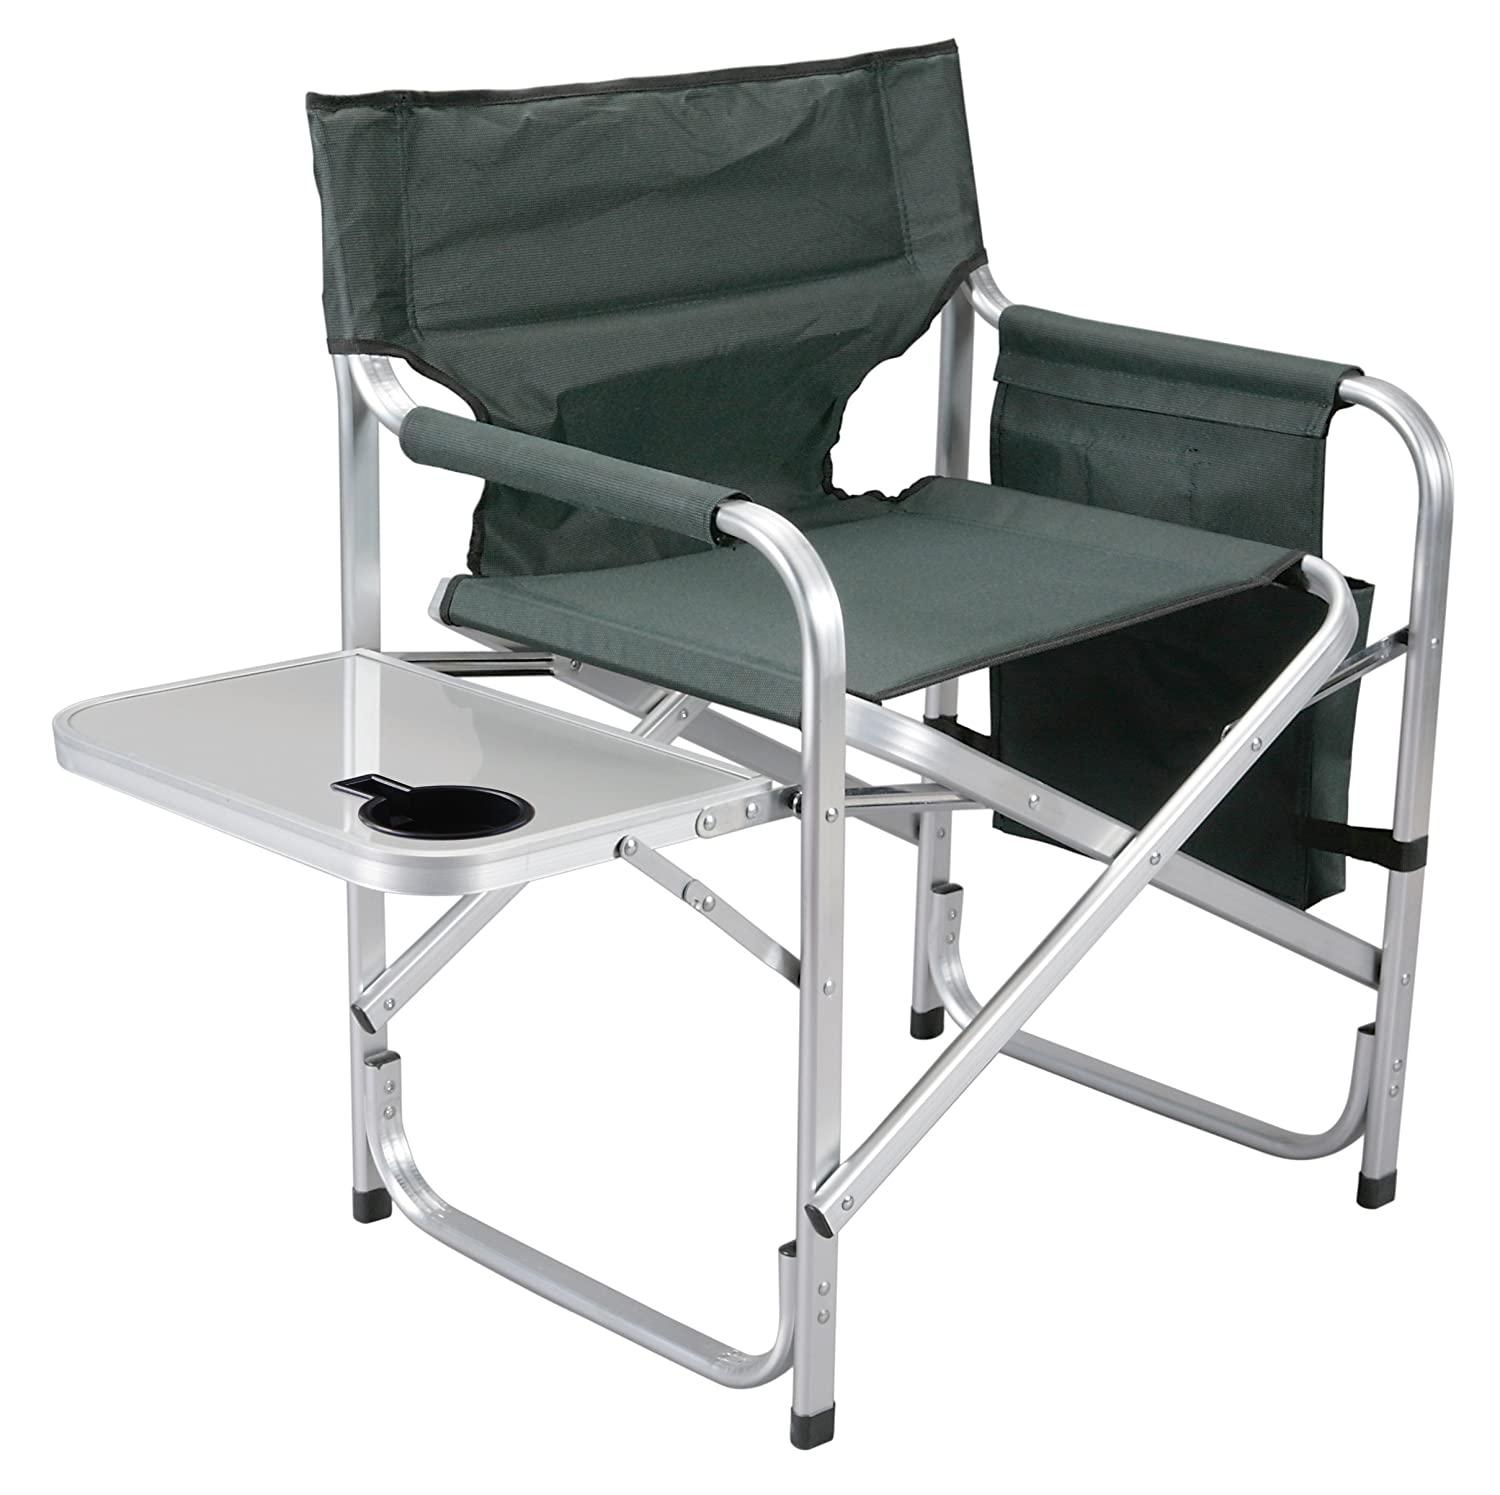 Amazon.com : Faulkner Aluminum Director Chair With Folding Tray And Cup  Holder, Green : Outdoor And Patio Furniture : Garden U0026 Outdoor